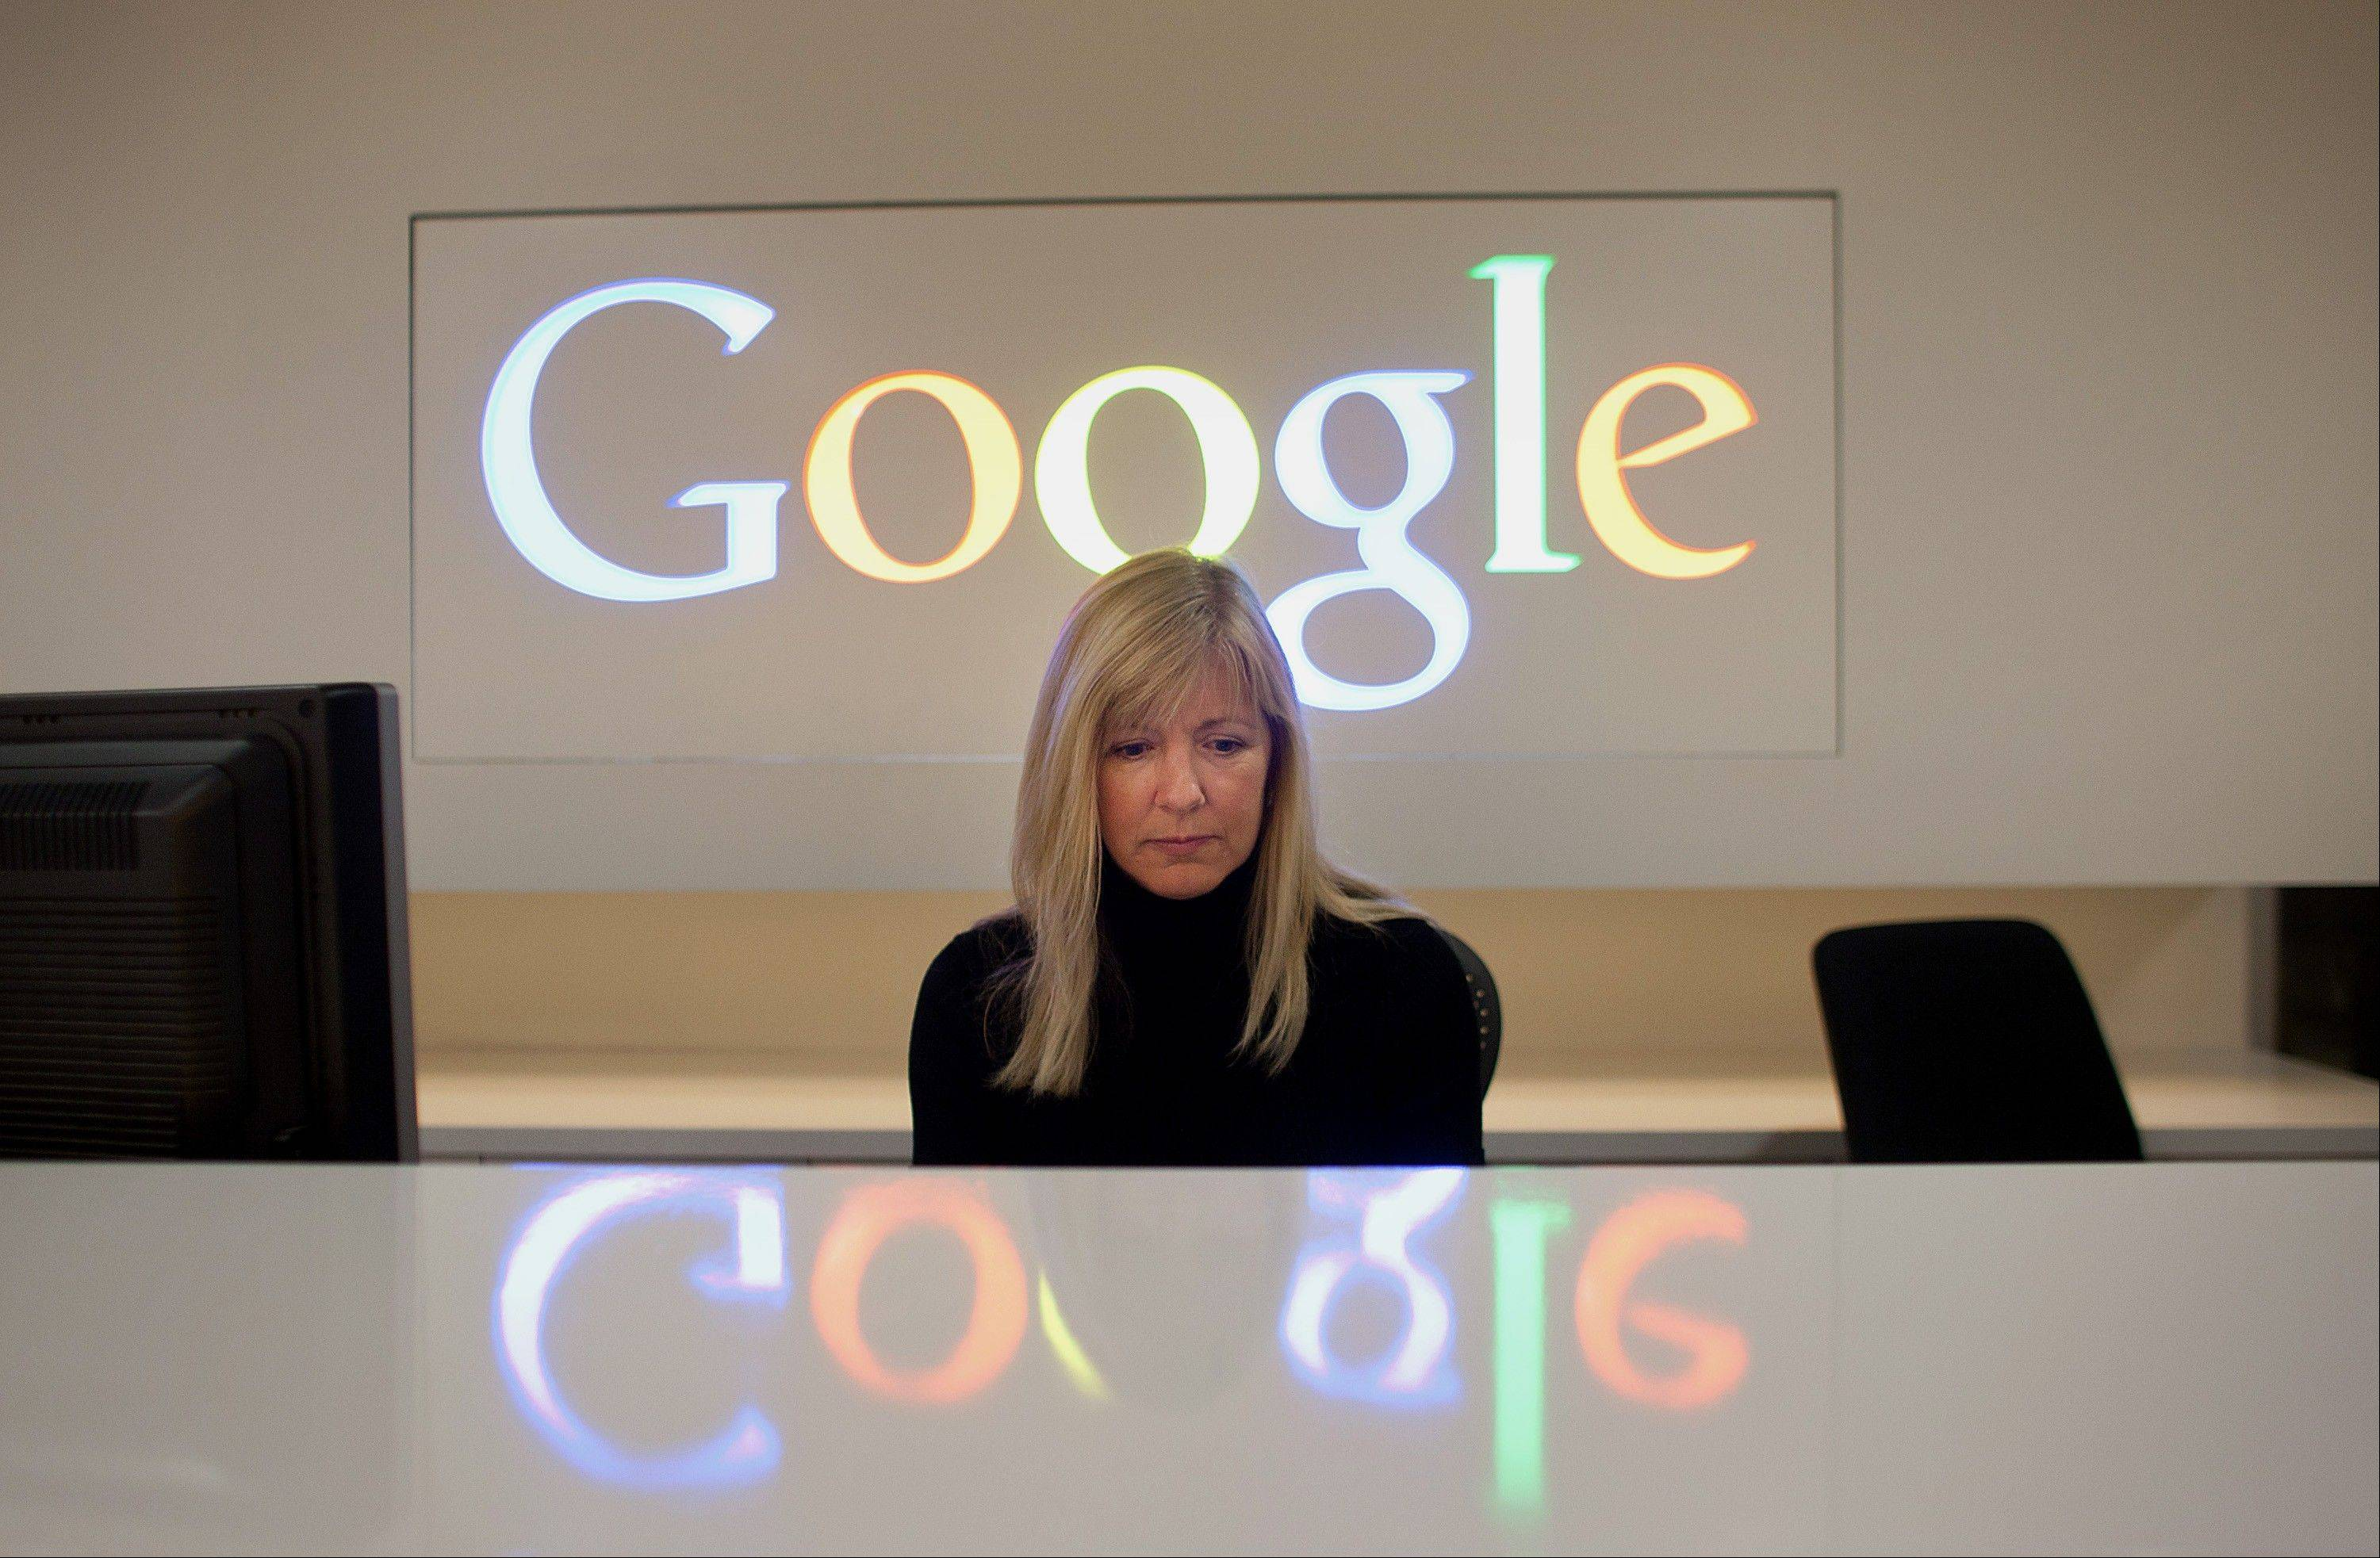 Google says it has reached an agreement over copyright issues with a group of French-language Belgian newspapers, ending a six-year dispute.